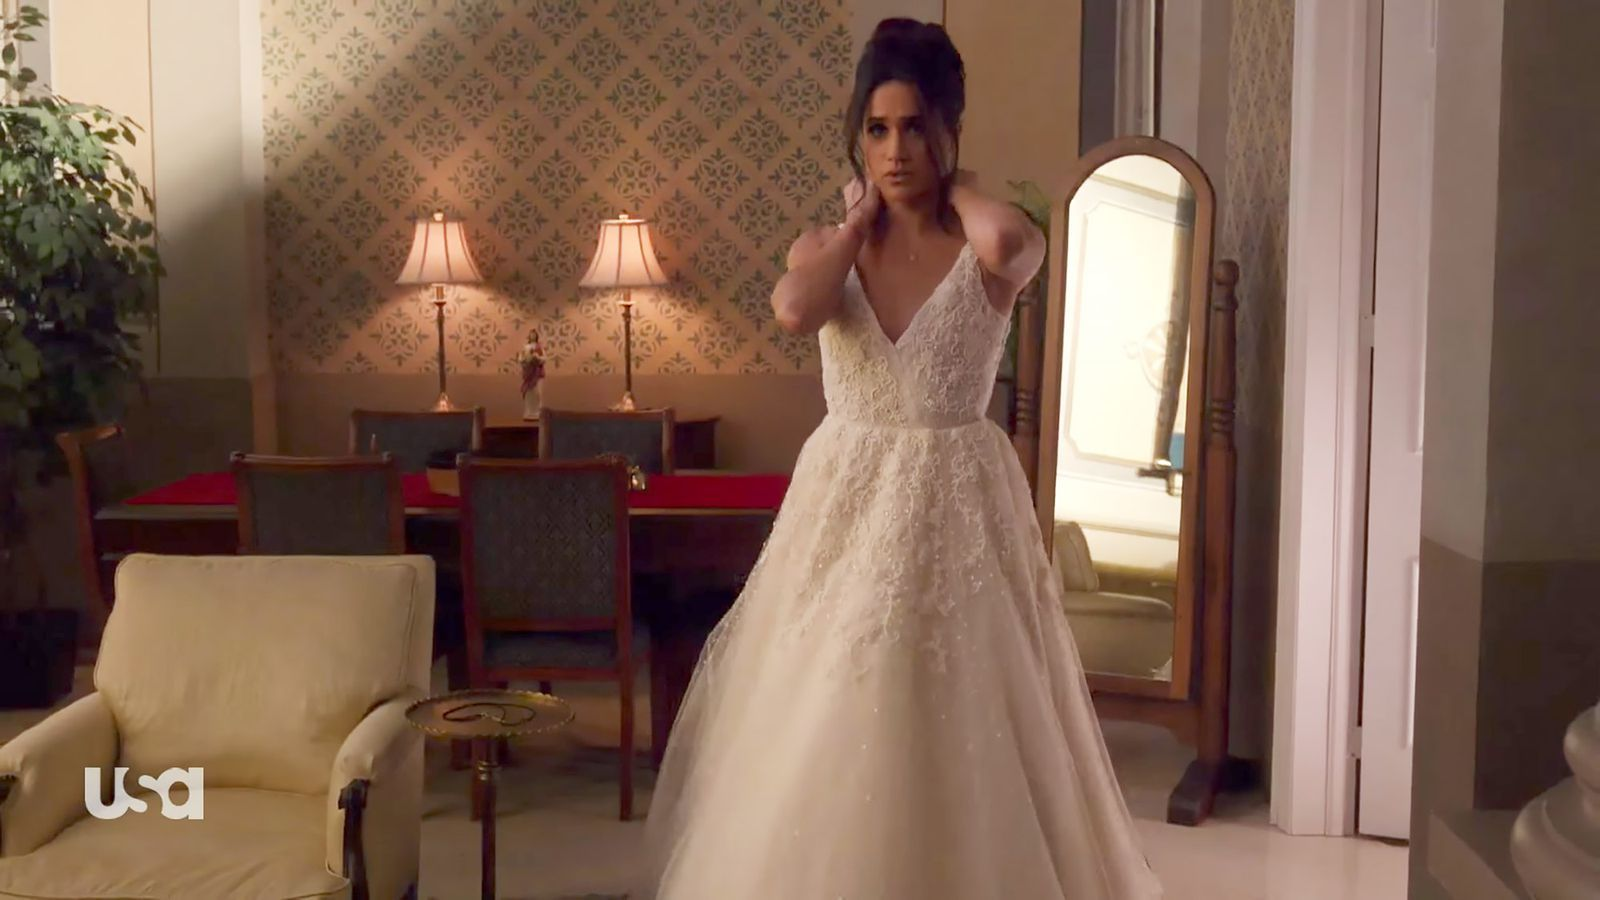 The Dreamiest Tv Wedding Dresses Of All Time